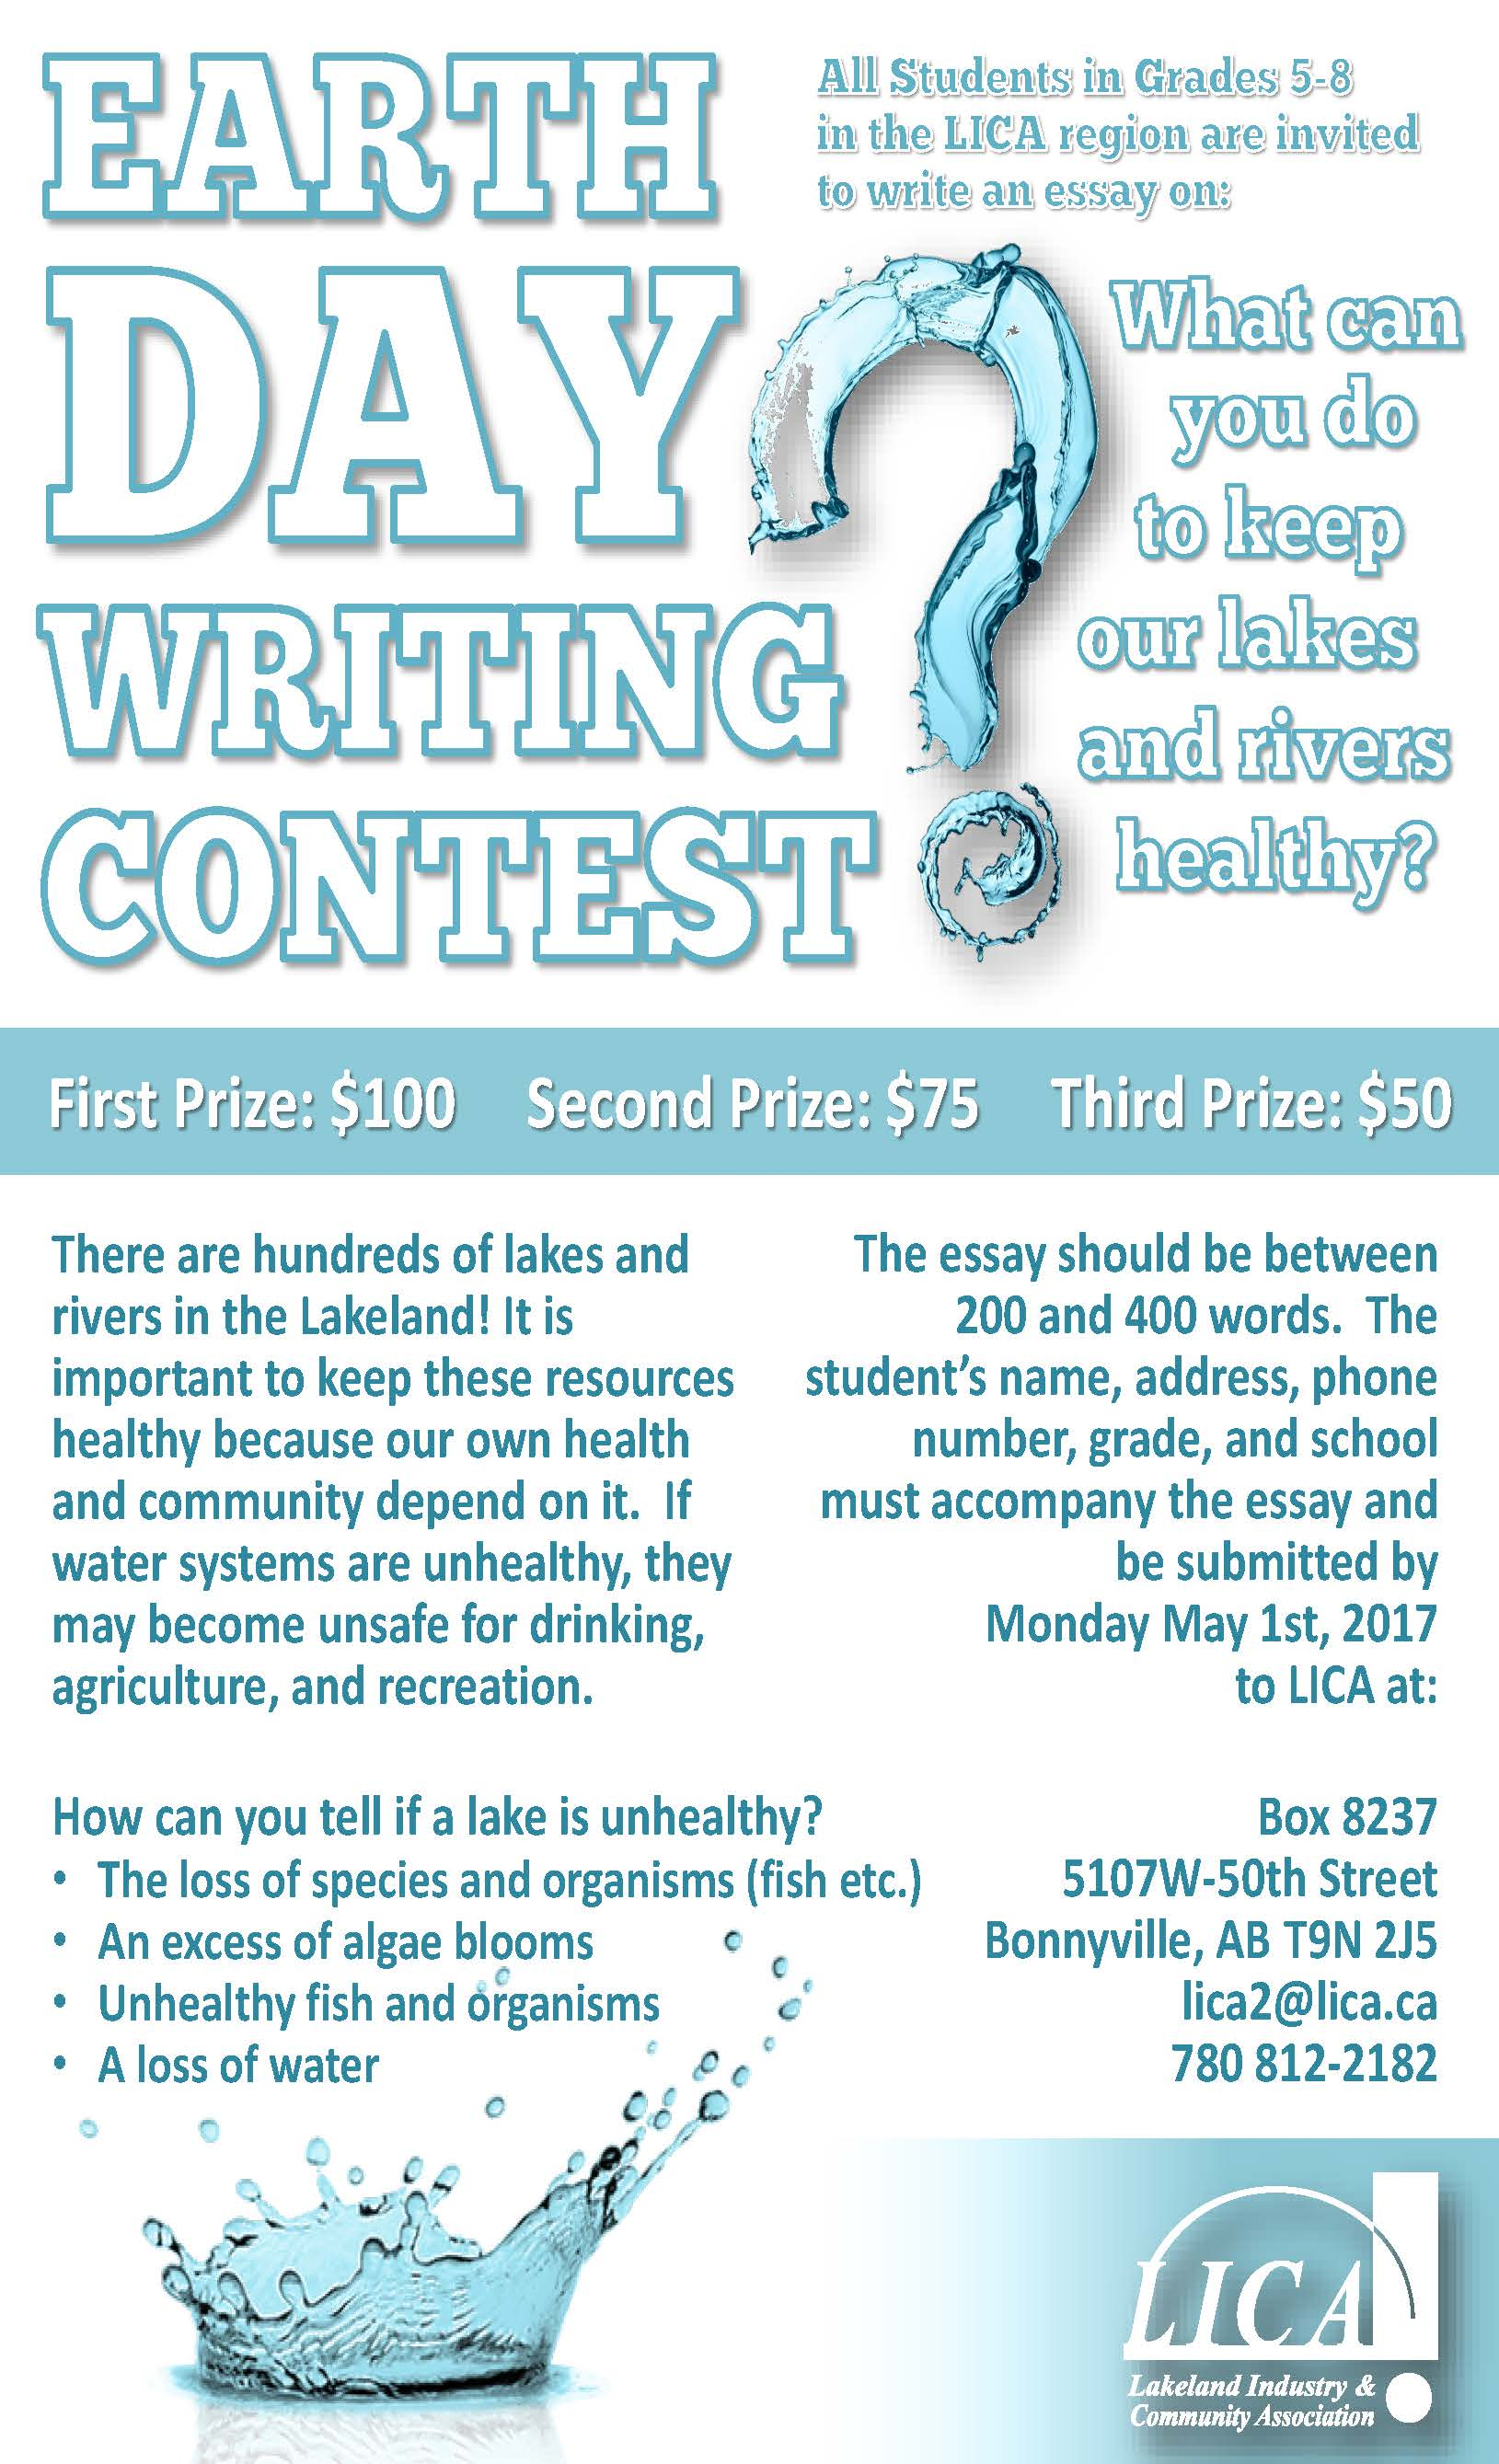 history essay competitions canada More than $ 25,000 in cash and prizes awarded to winners of the chanticleer writing competitions 2018 - 2019 indie, self-pub, traditionally pub prizes and promotion for winners chanticleer book reviews.